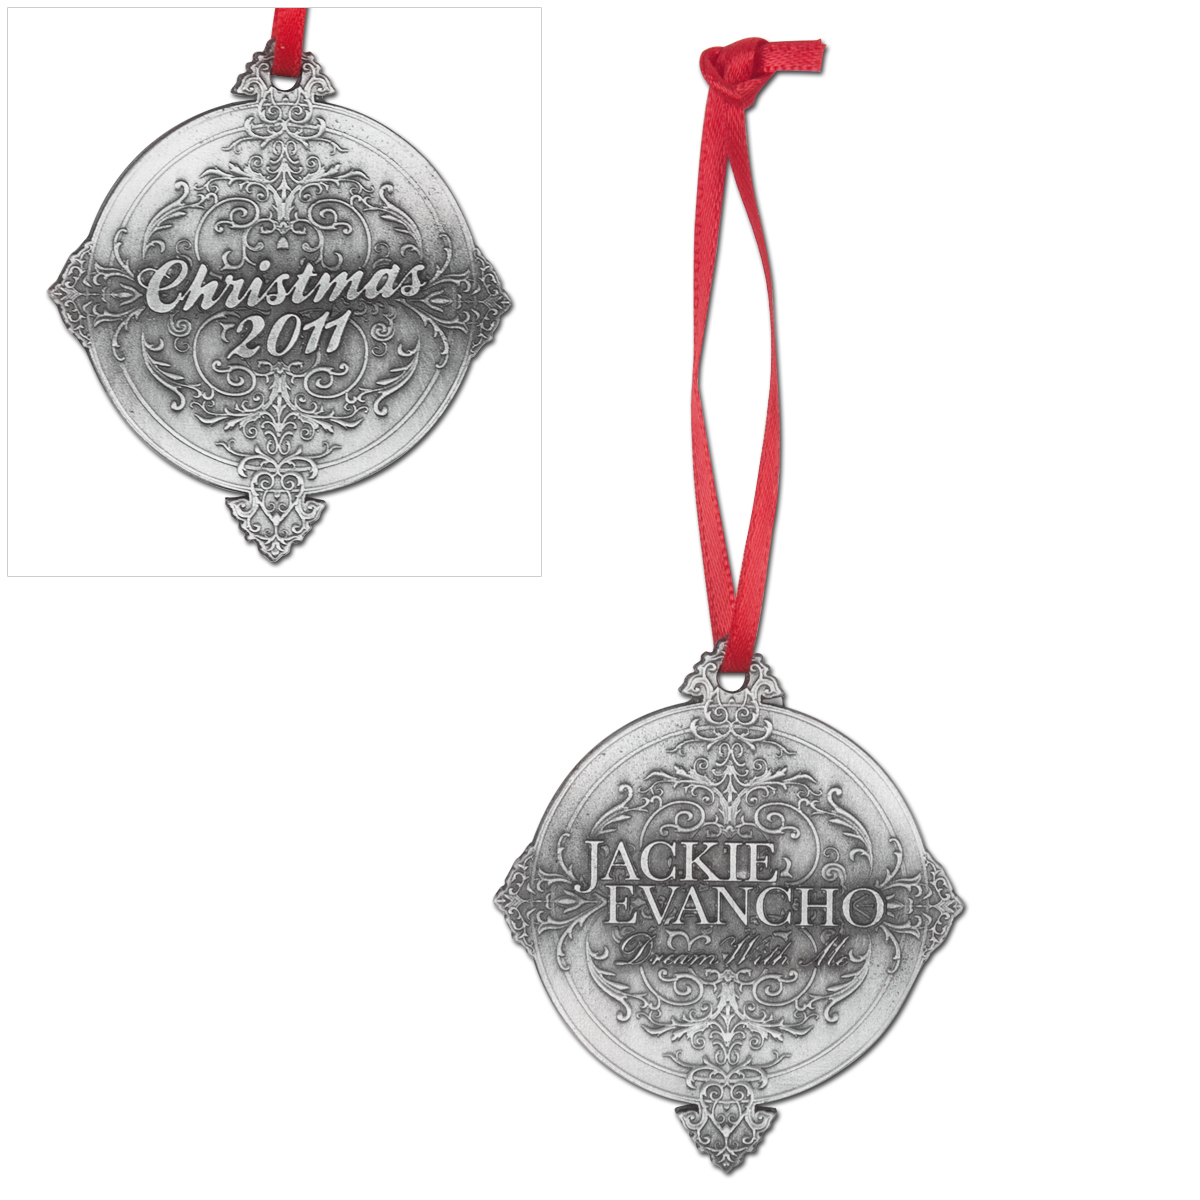 Jackie Evancho 2011 Christmas Ornament